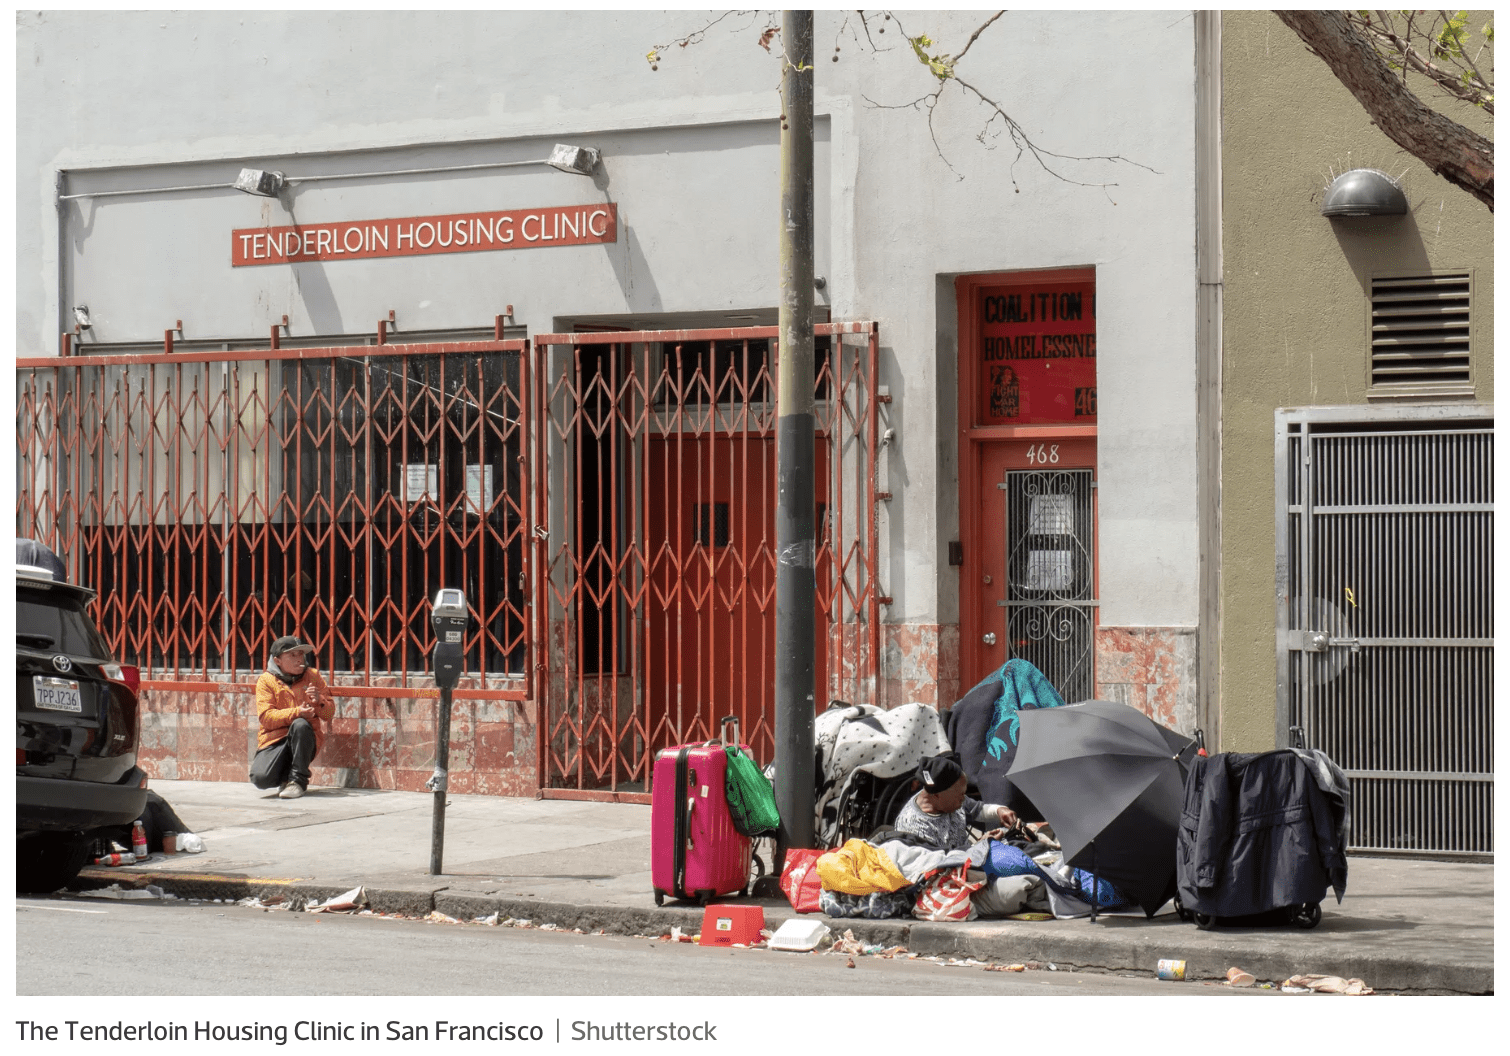 Cities can't criminalize homelessness, federal court affirms